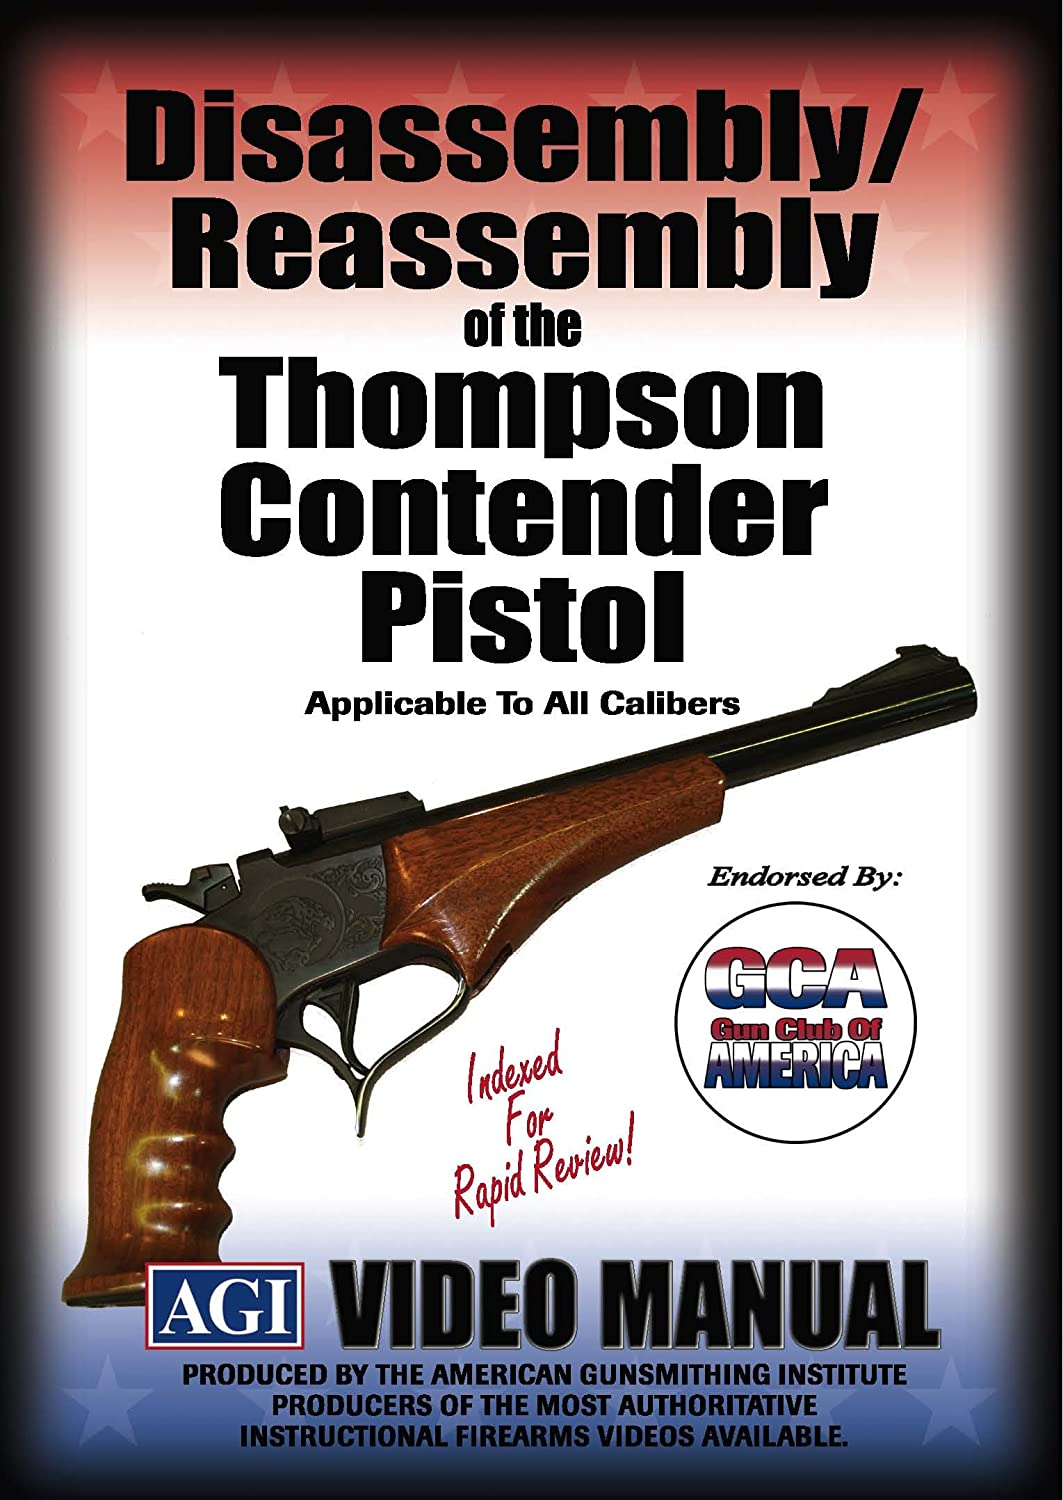 Thompson Center Contender Disassembly Schematics Reassembly Of The Pistol Movies 1063x1500